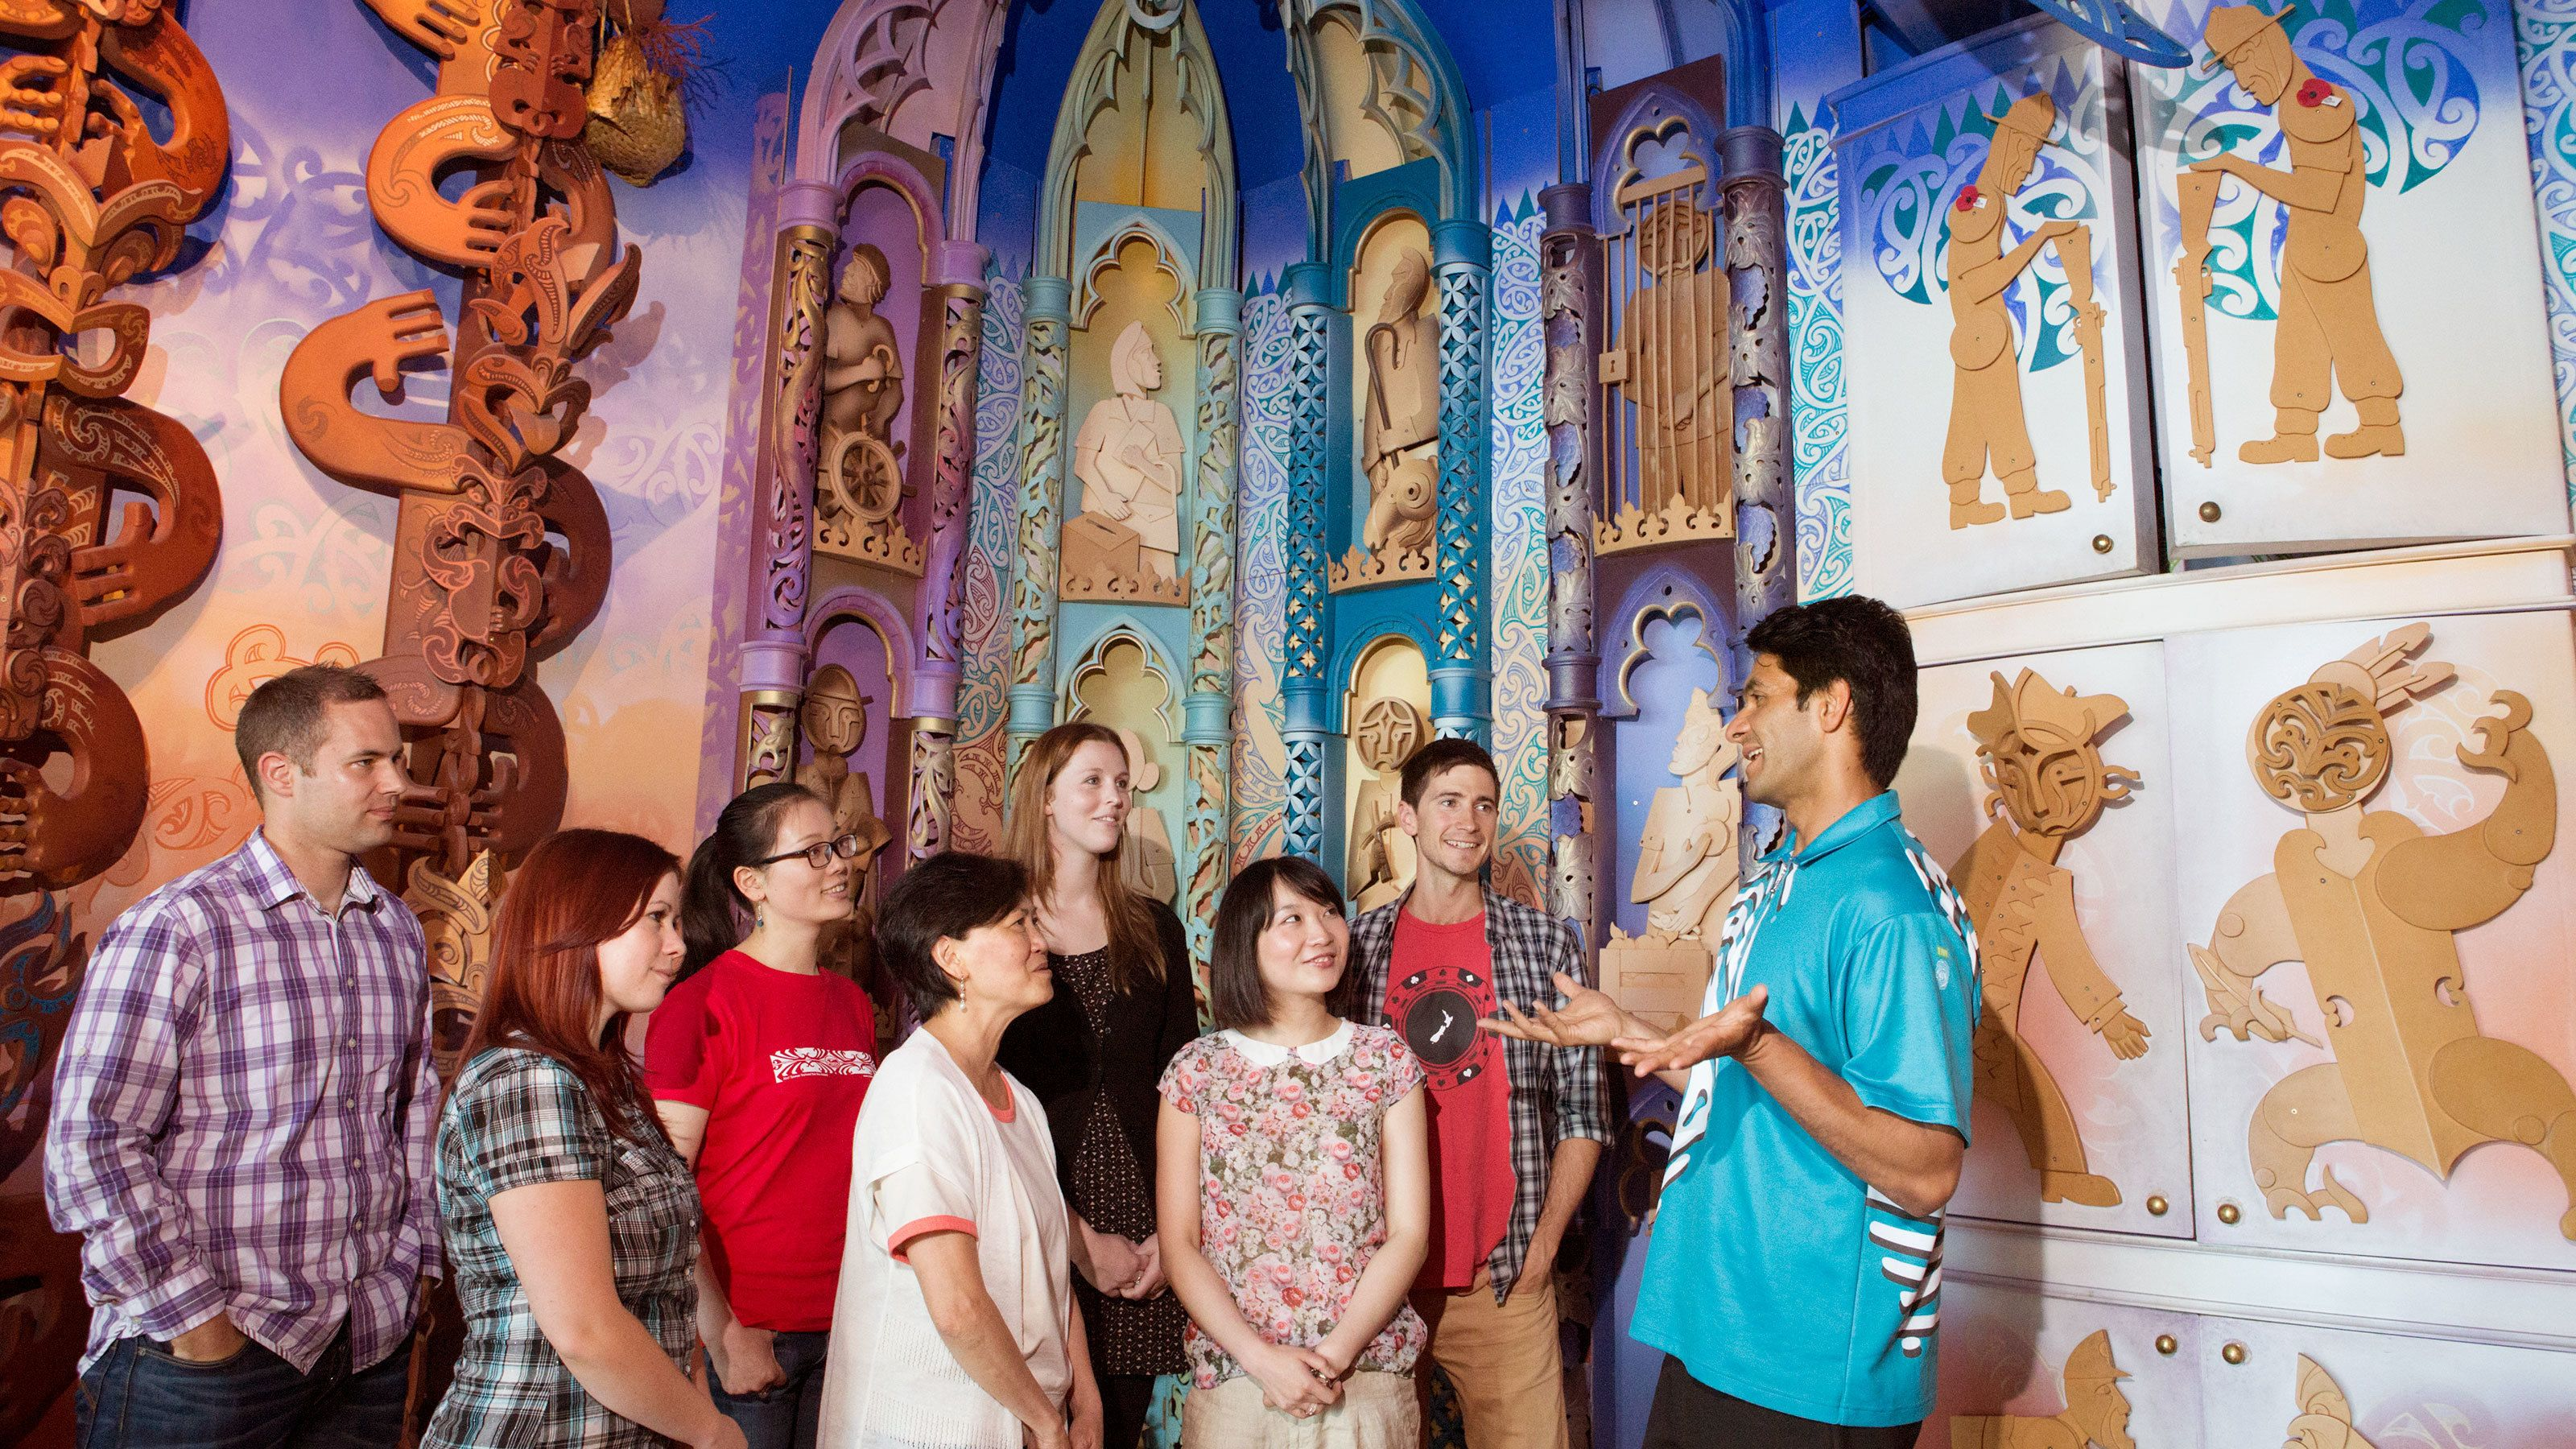 Guided Tour & Admission to the Museum of New Zealand Te Papa Tongarewa